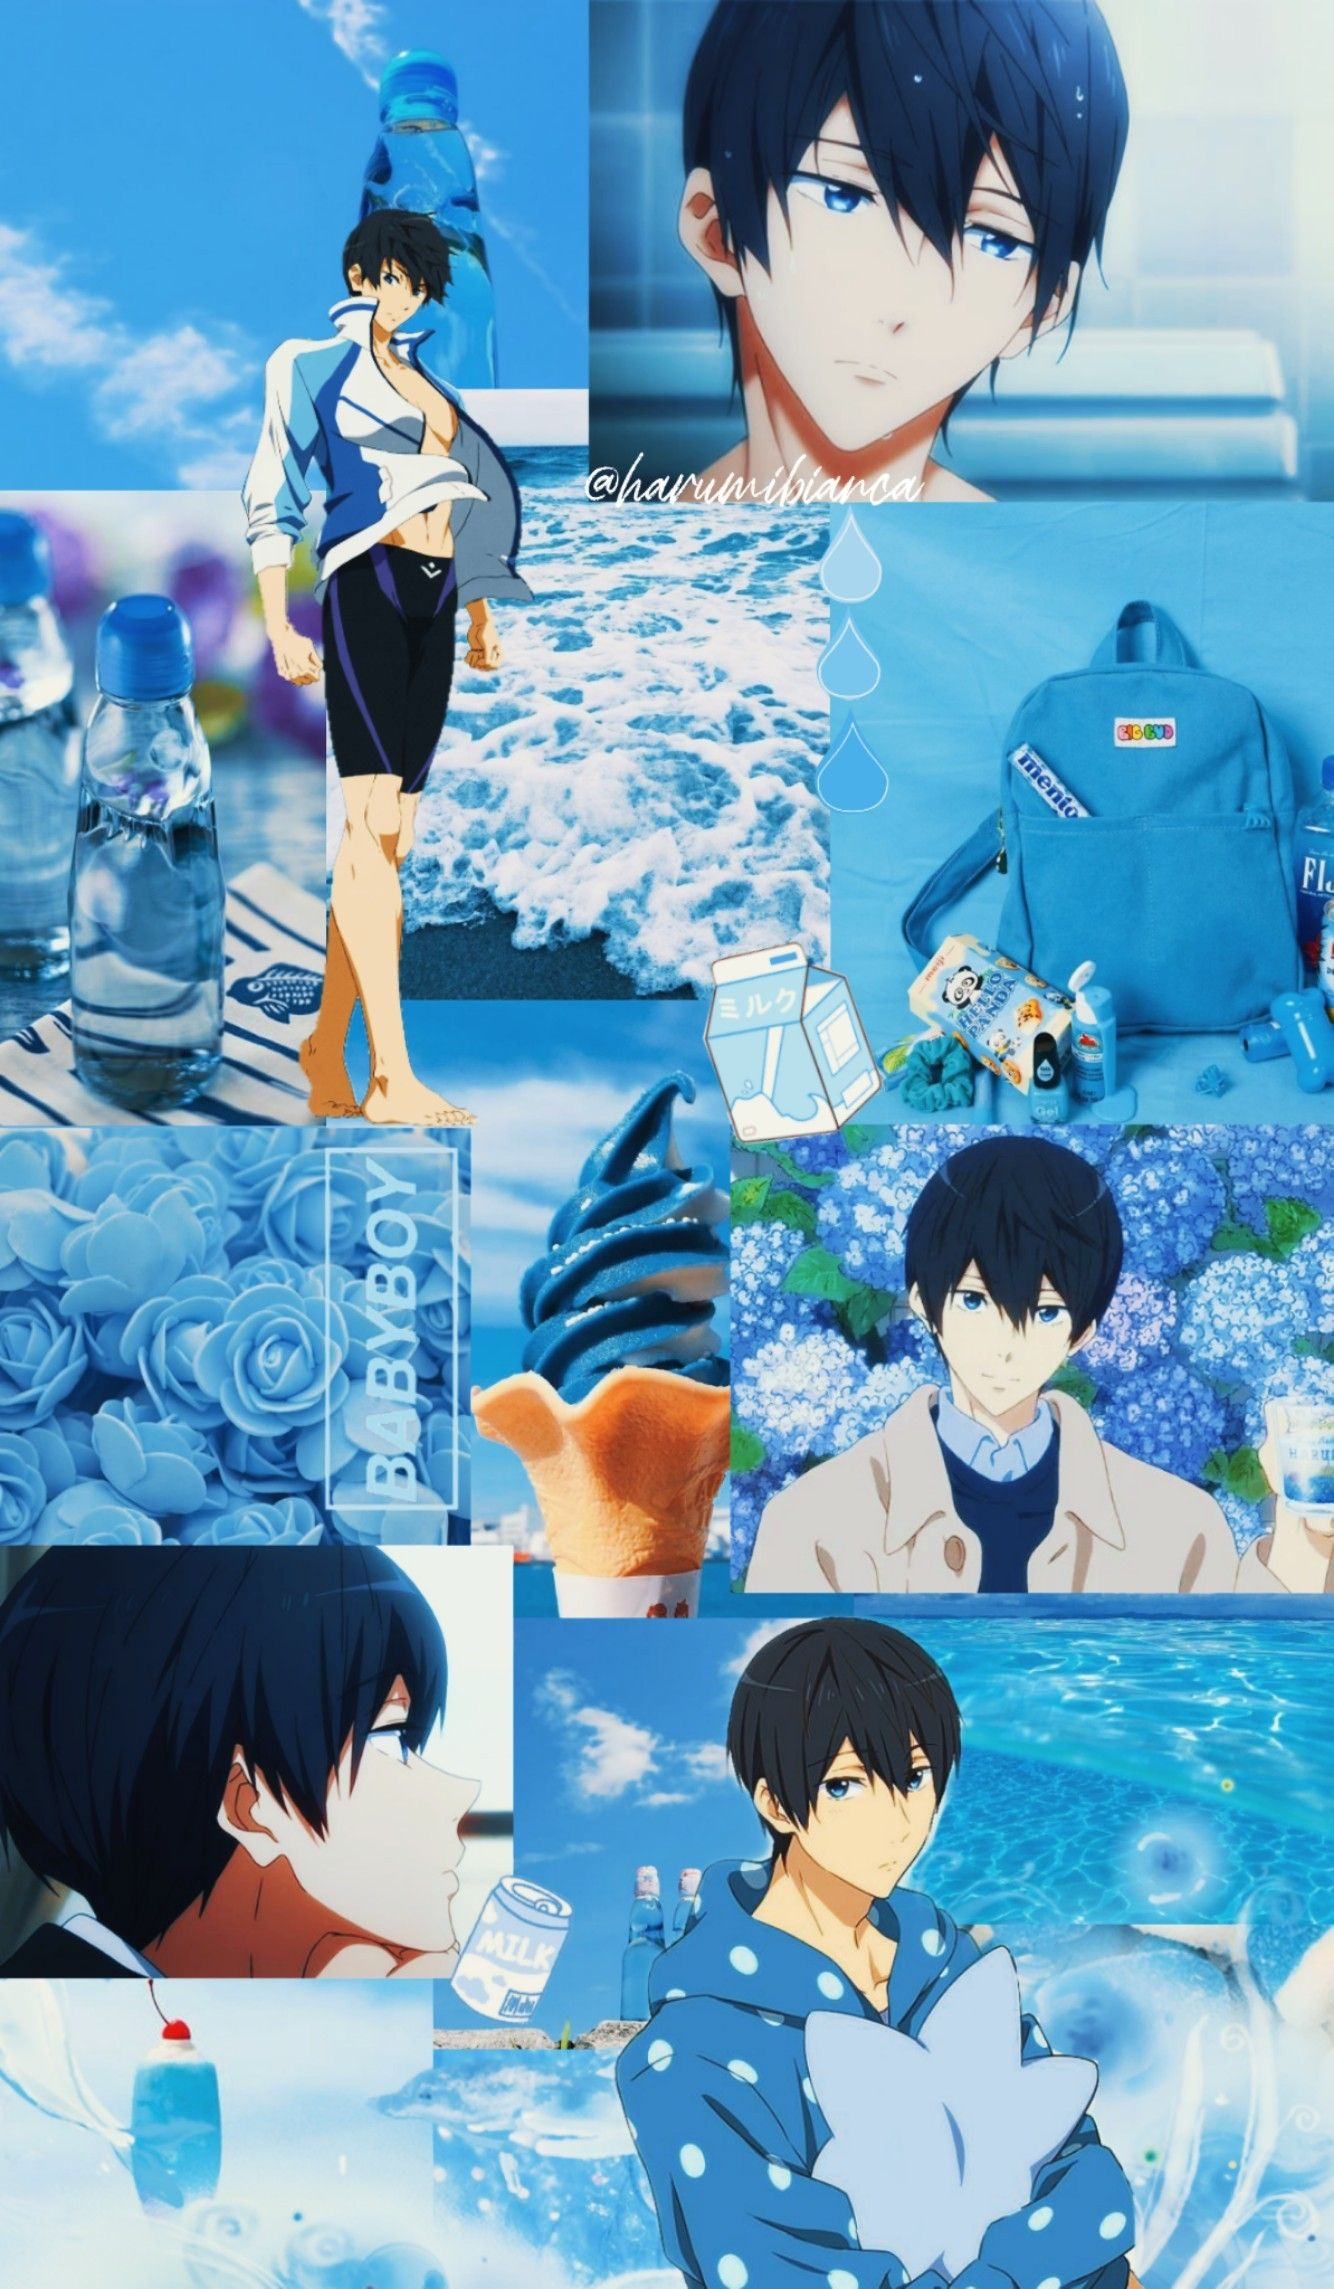 Haruka Nanase Wallpaper Free Iwatobi Aesthetic In 2020 Anime Wallpaper Phone Anime Wallpaper Iphone Anime Wallpaper